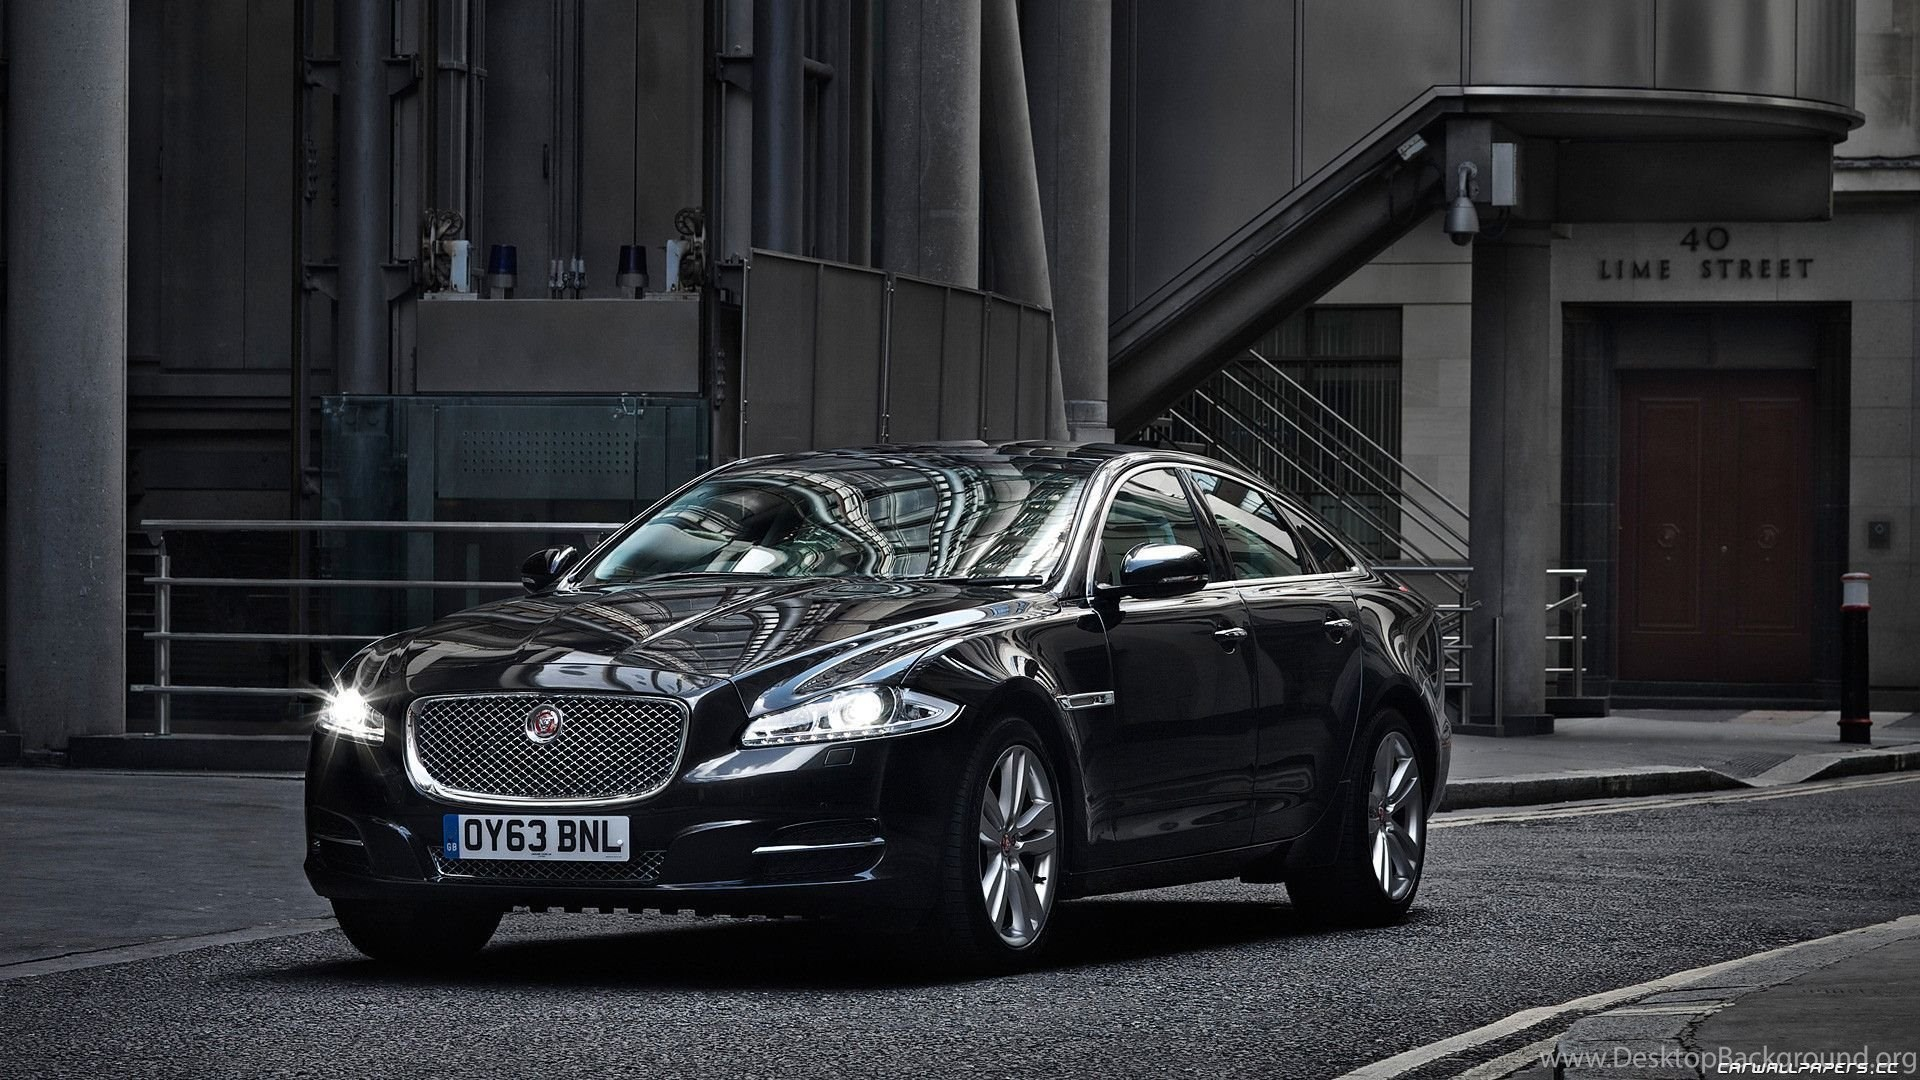 Black Jaguar Xf Wallpapers Image Desktop Background